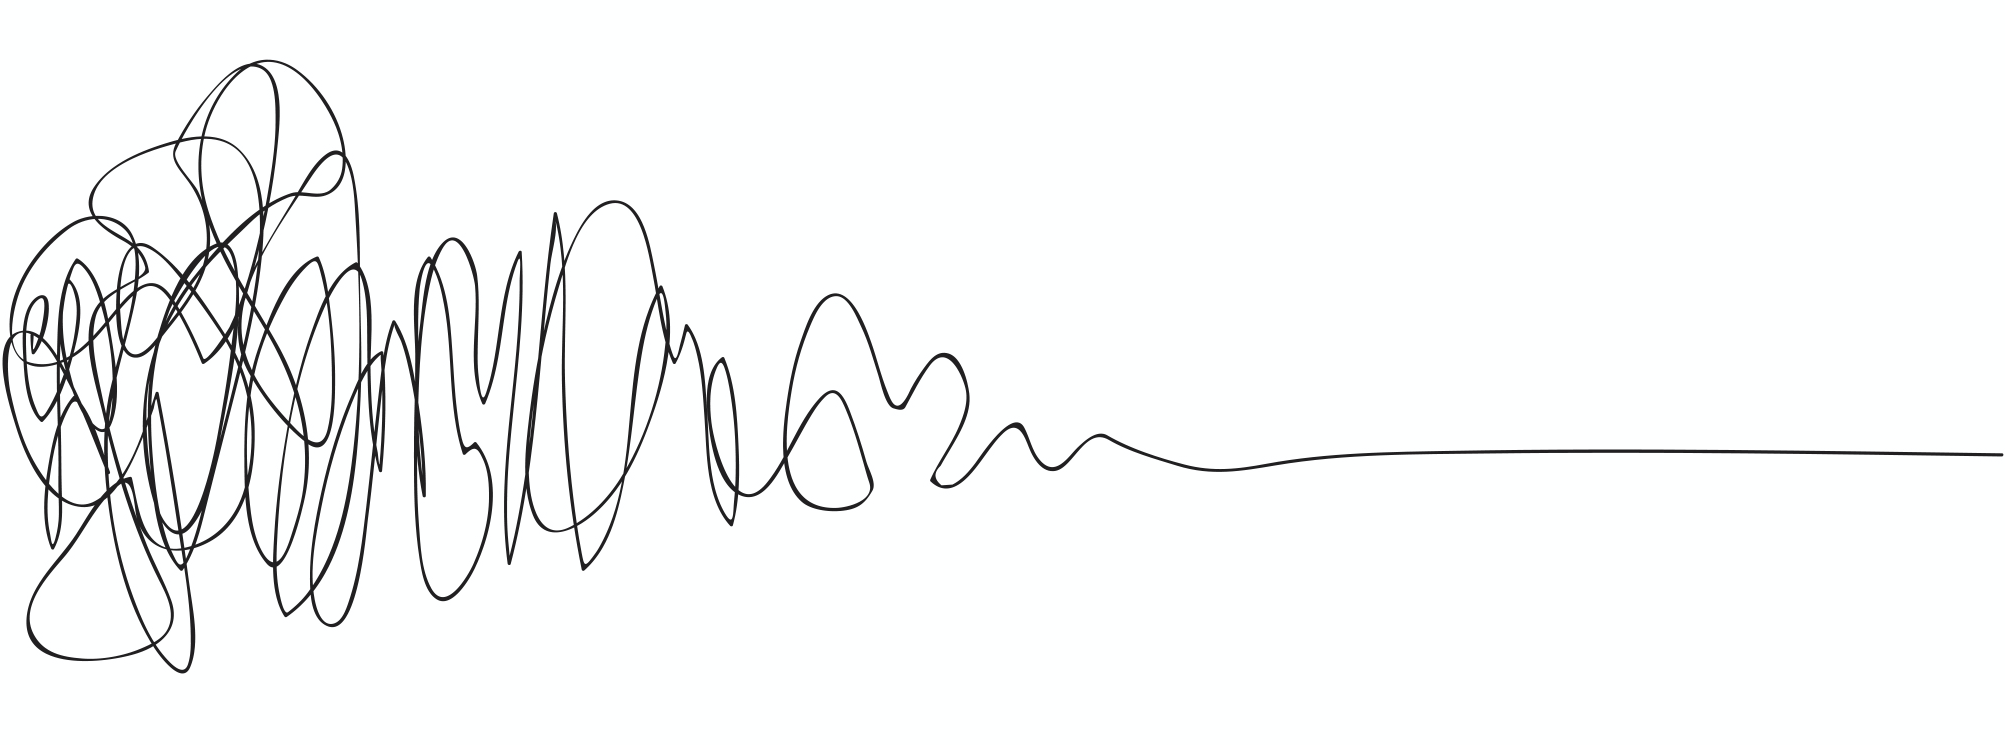 The Design Squiggle by Damien Newman - a squiggly tangled mess moving into a simple straight line, that demonstrates how the design process moves people from uncertainty to certainty.